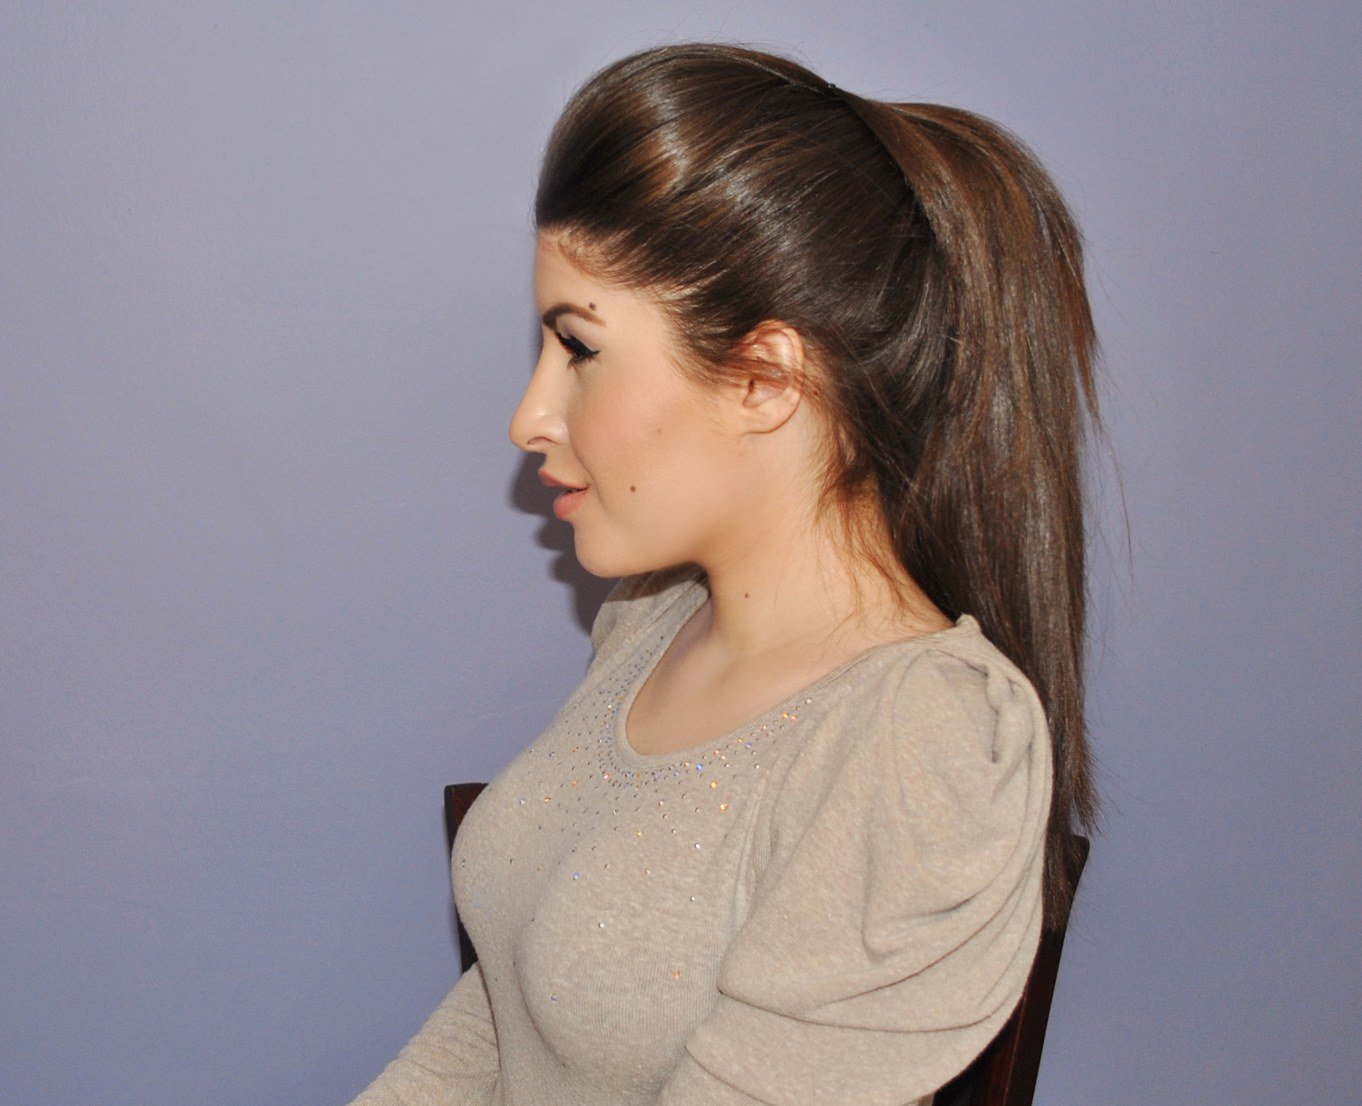 Hairstyle Ponytail : hairstyle for office, college or school going girls; this ponytail ...